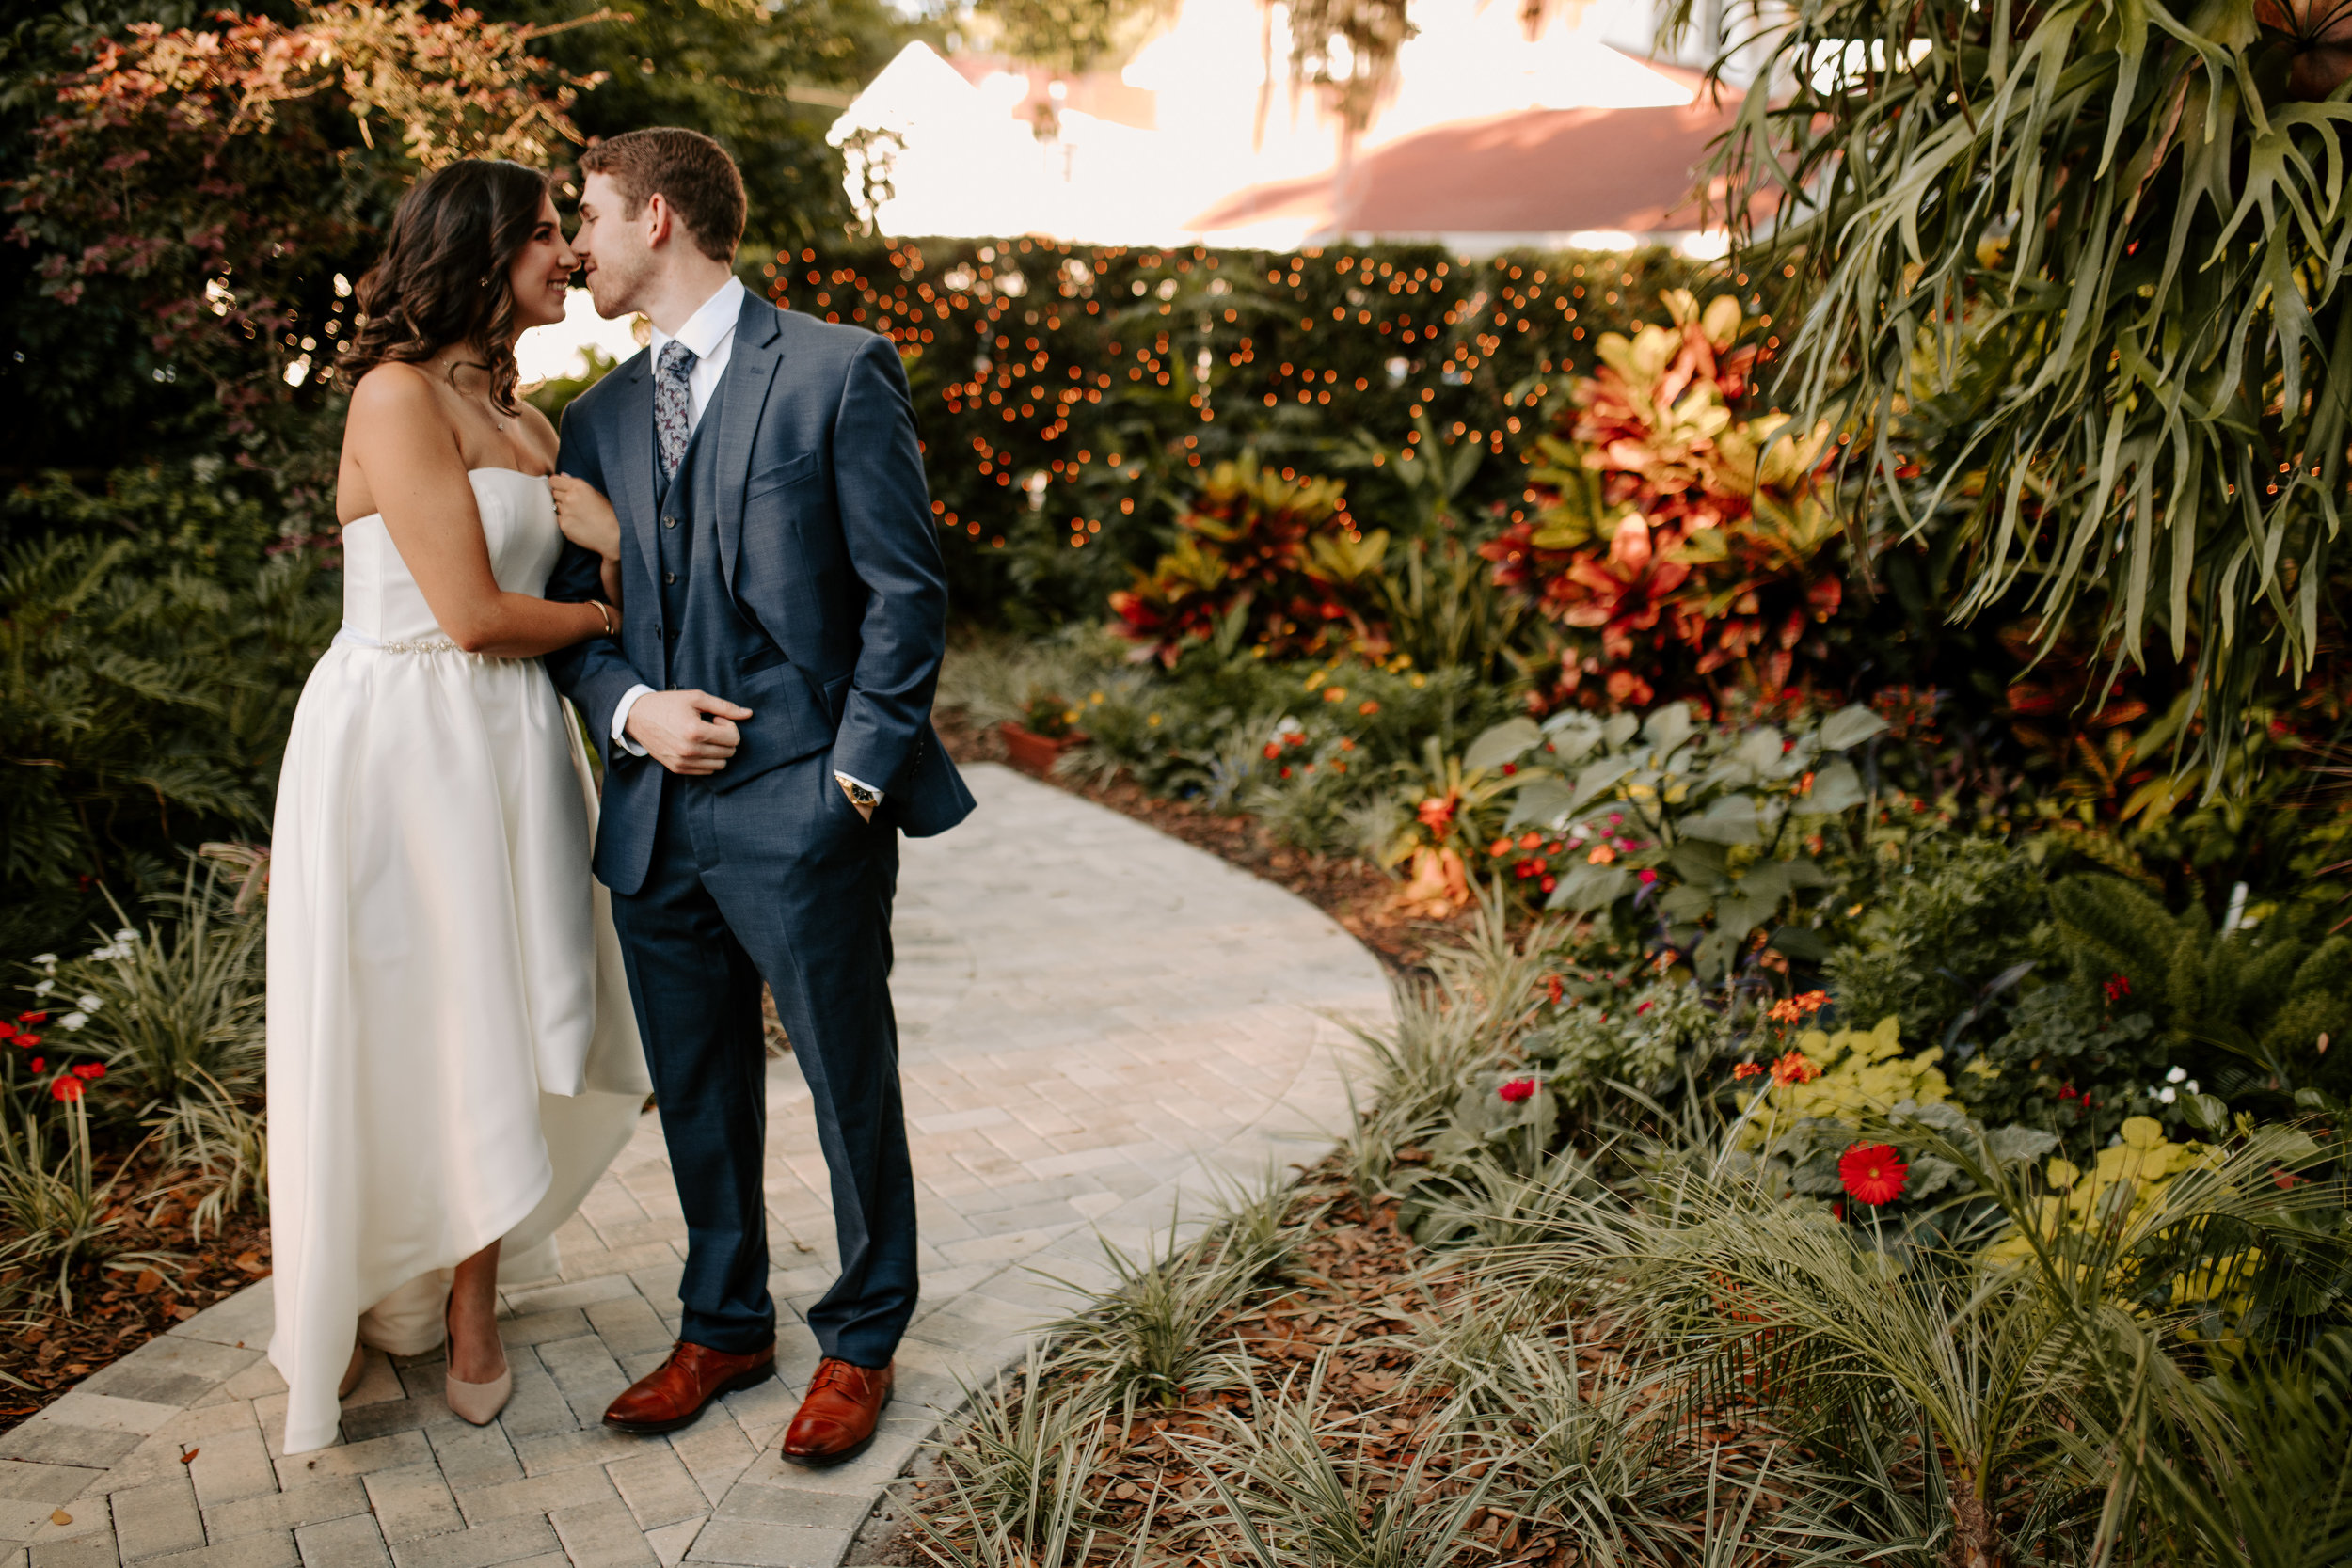 Native_Expressions-Andrea+Miles-Backyard_Garden_Wedding-Bridal_Portraits_1-59.jpg